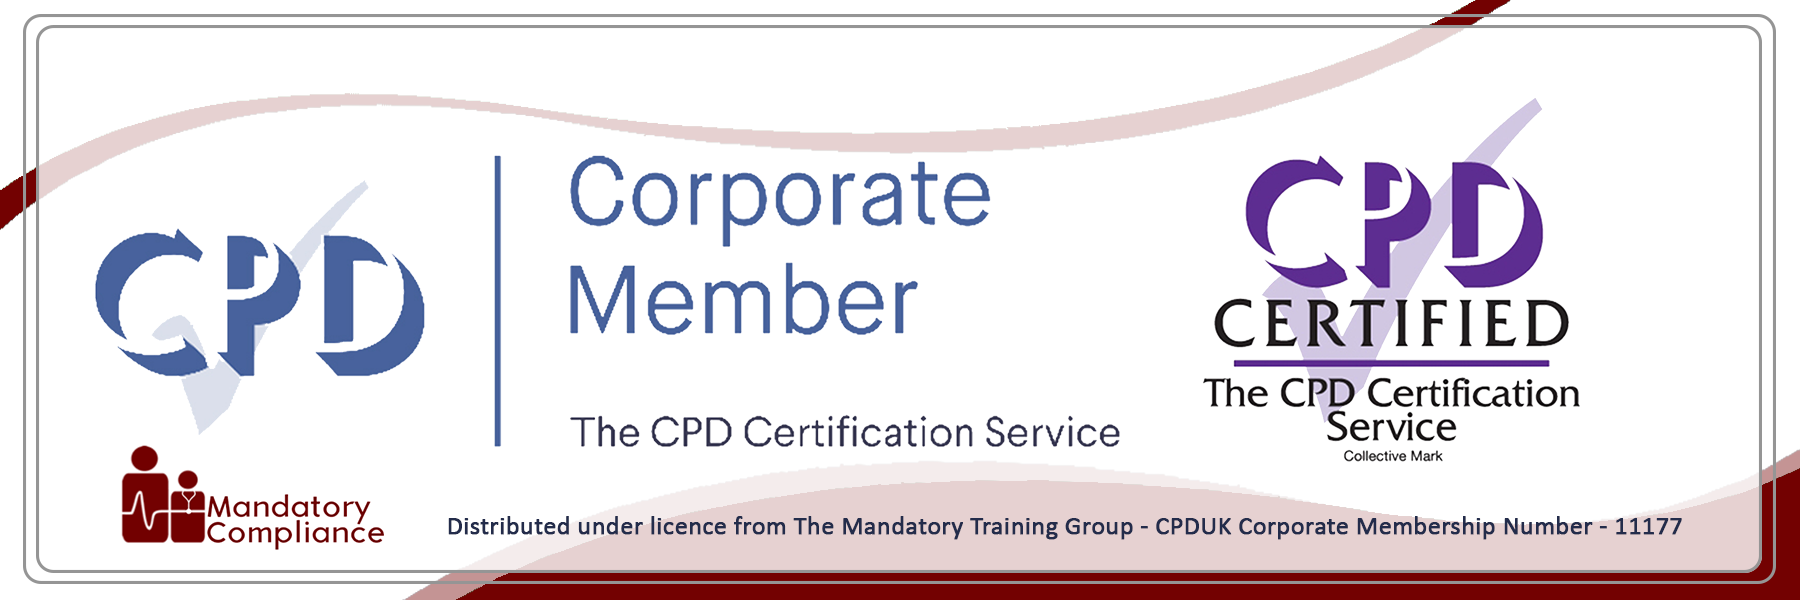 Communication and Language Difficulties - Online -Training - Course-CPD Accredited - Mandatory Compliance UK-